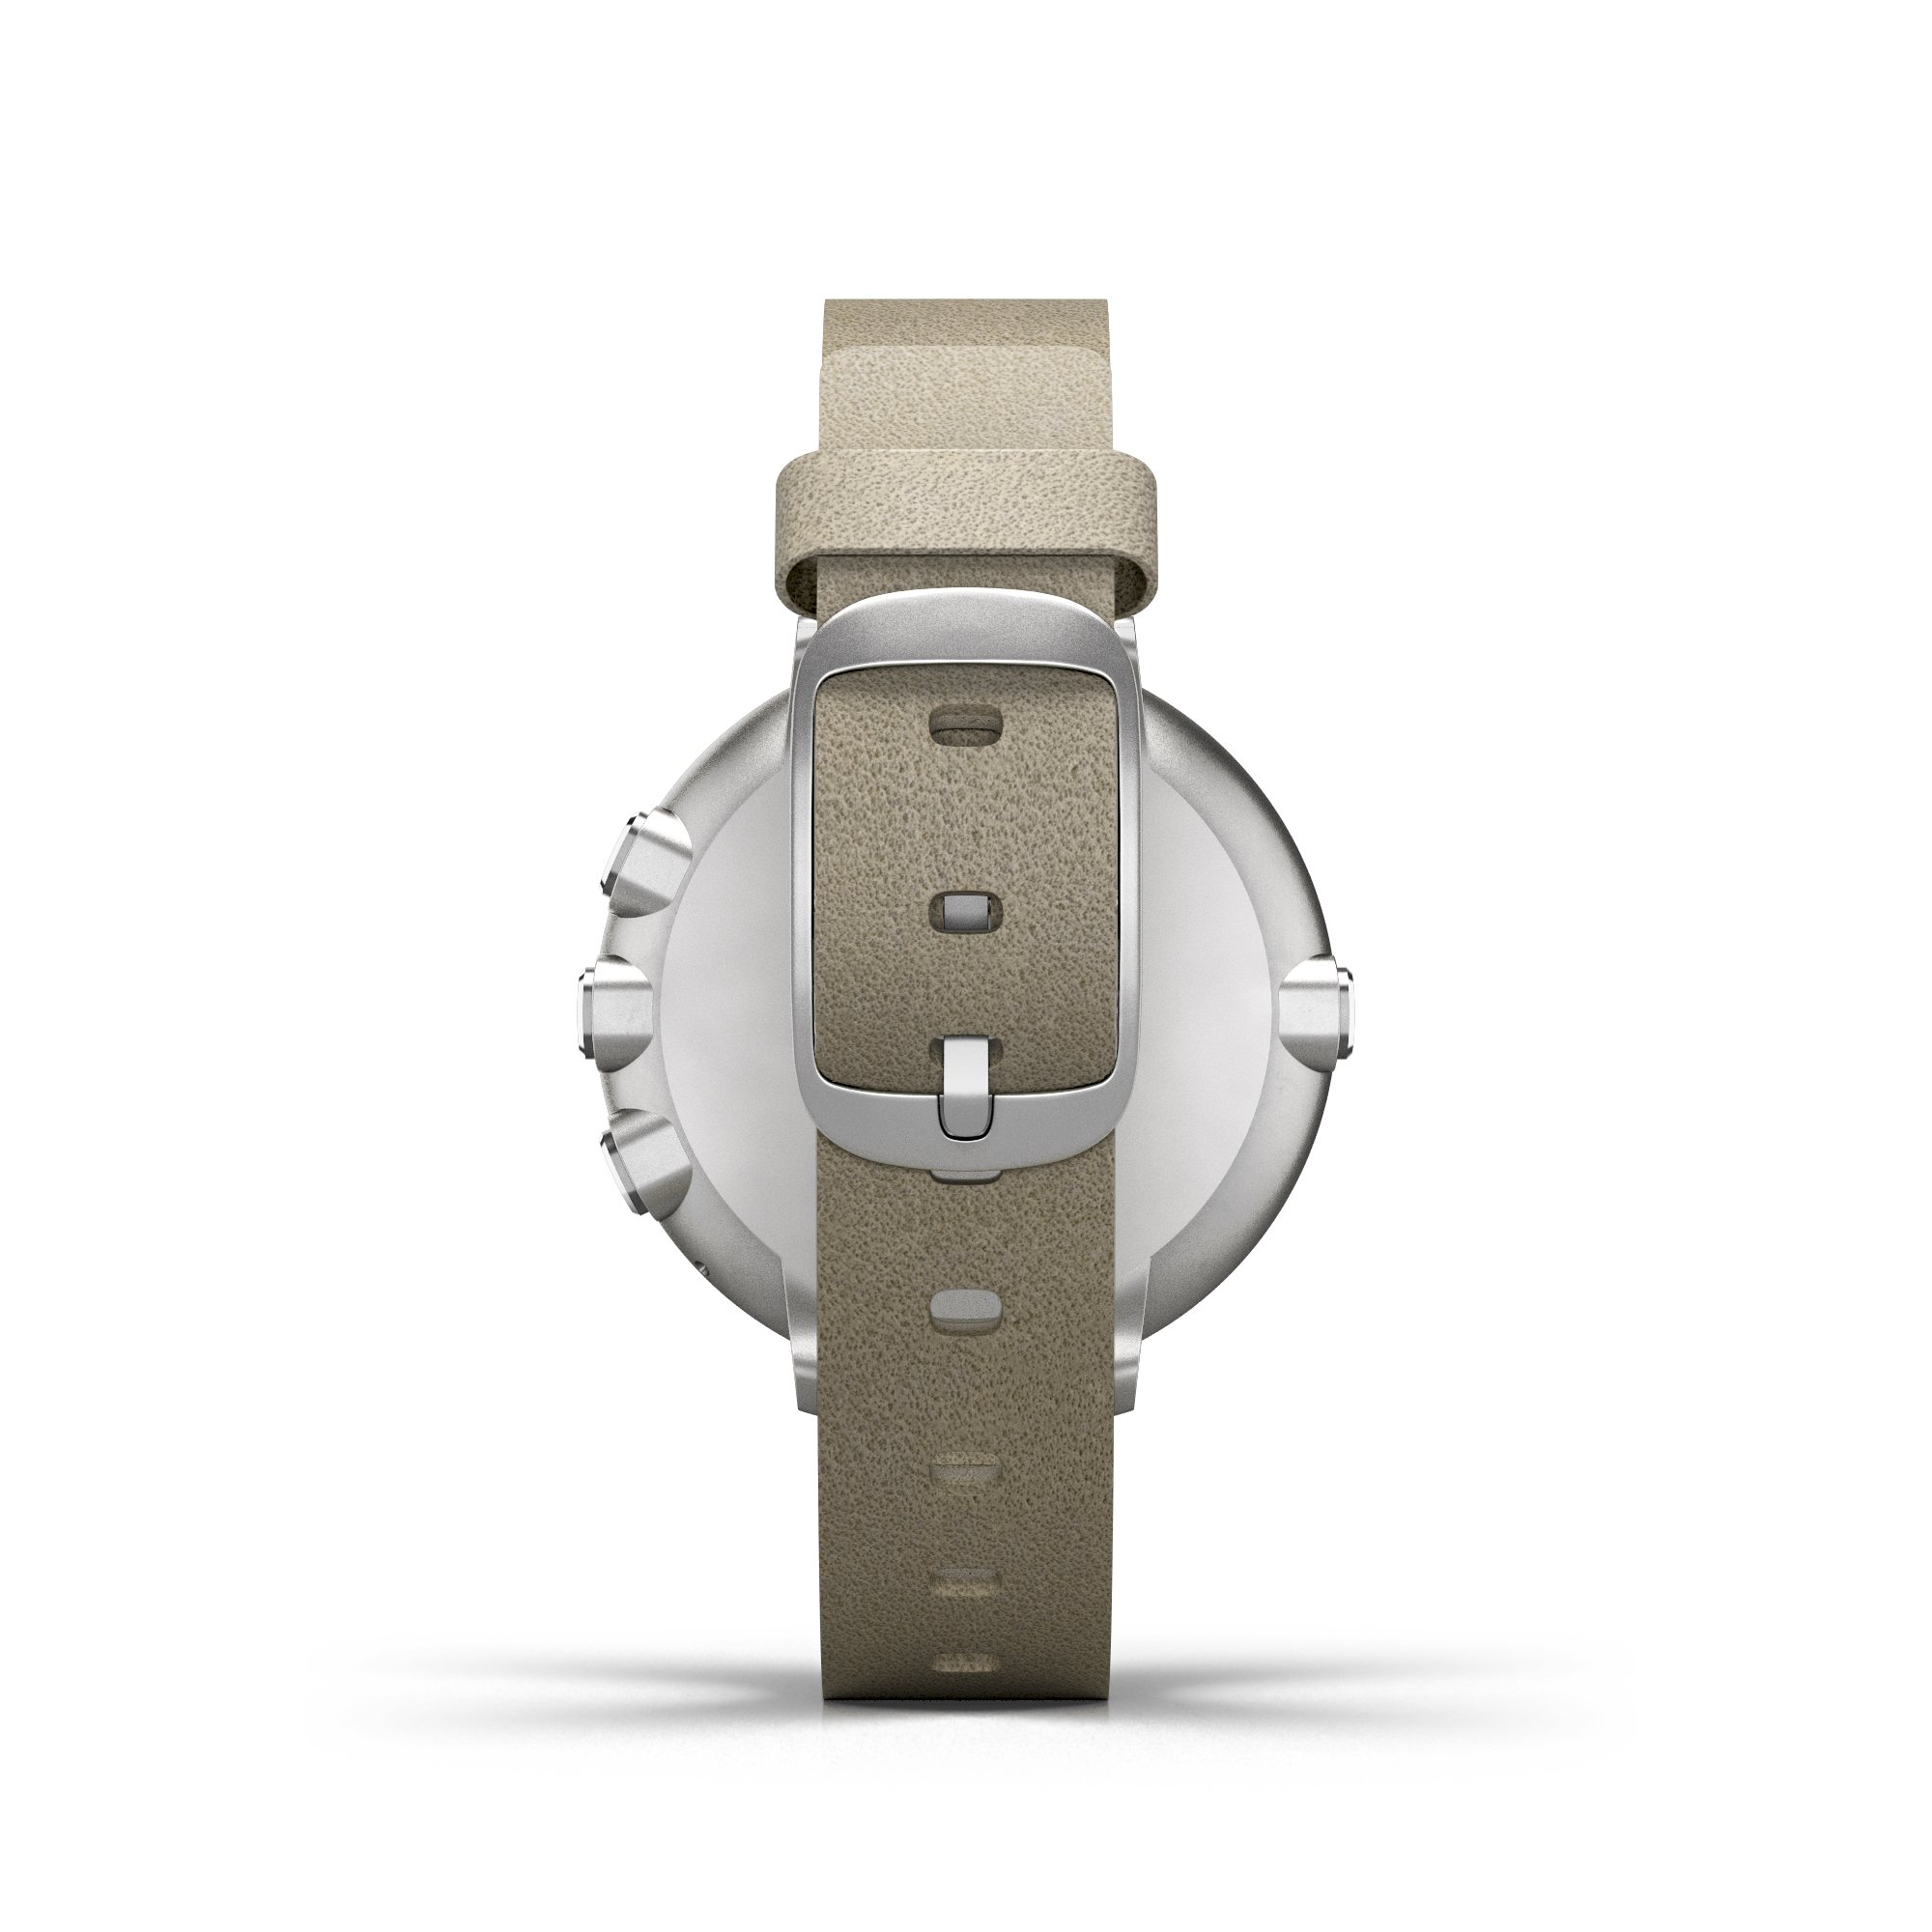 Pebble Time Round 14mm Smartwatch for Apple/Android Devices - Silver/Stone by Pebble Technology Corp (Image #2)